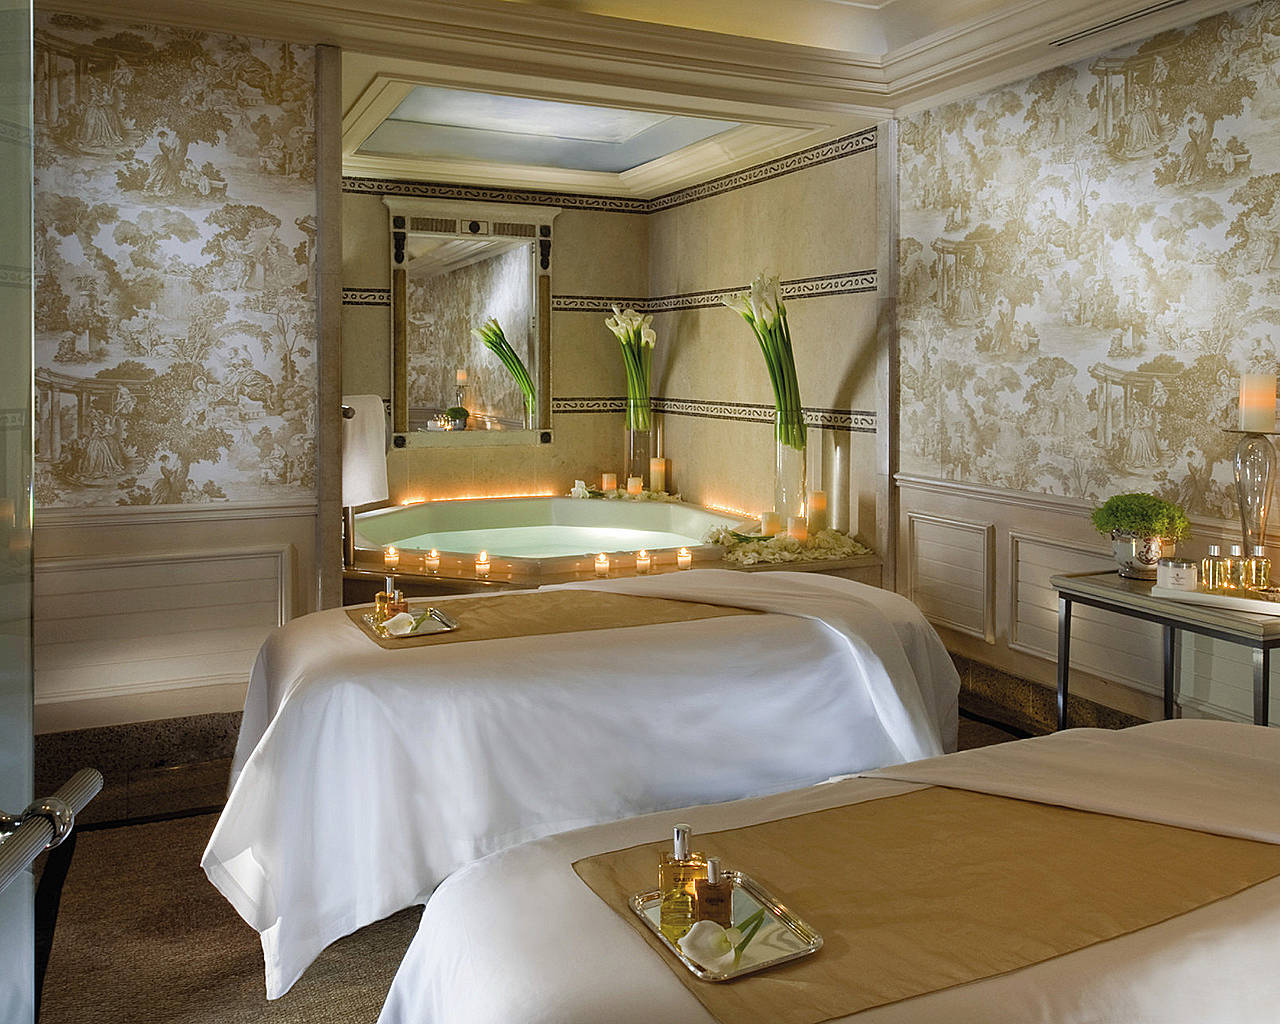 Stay at four seasons hotel george v paris my perfect - Hotel georges v paris prix chambre ...